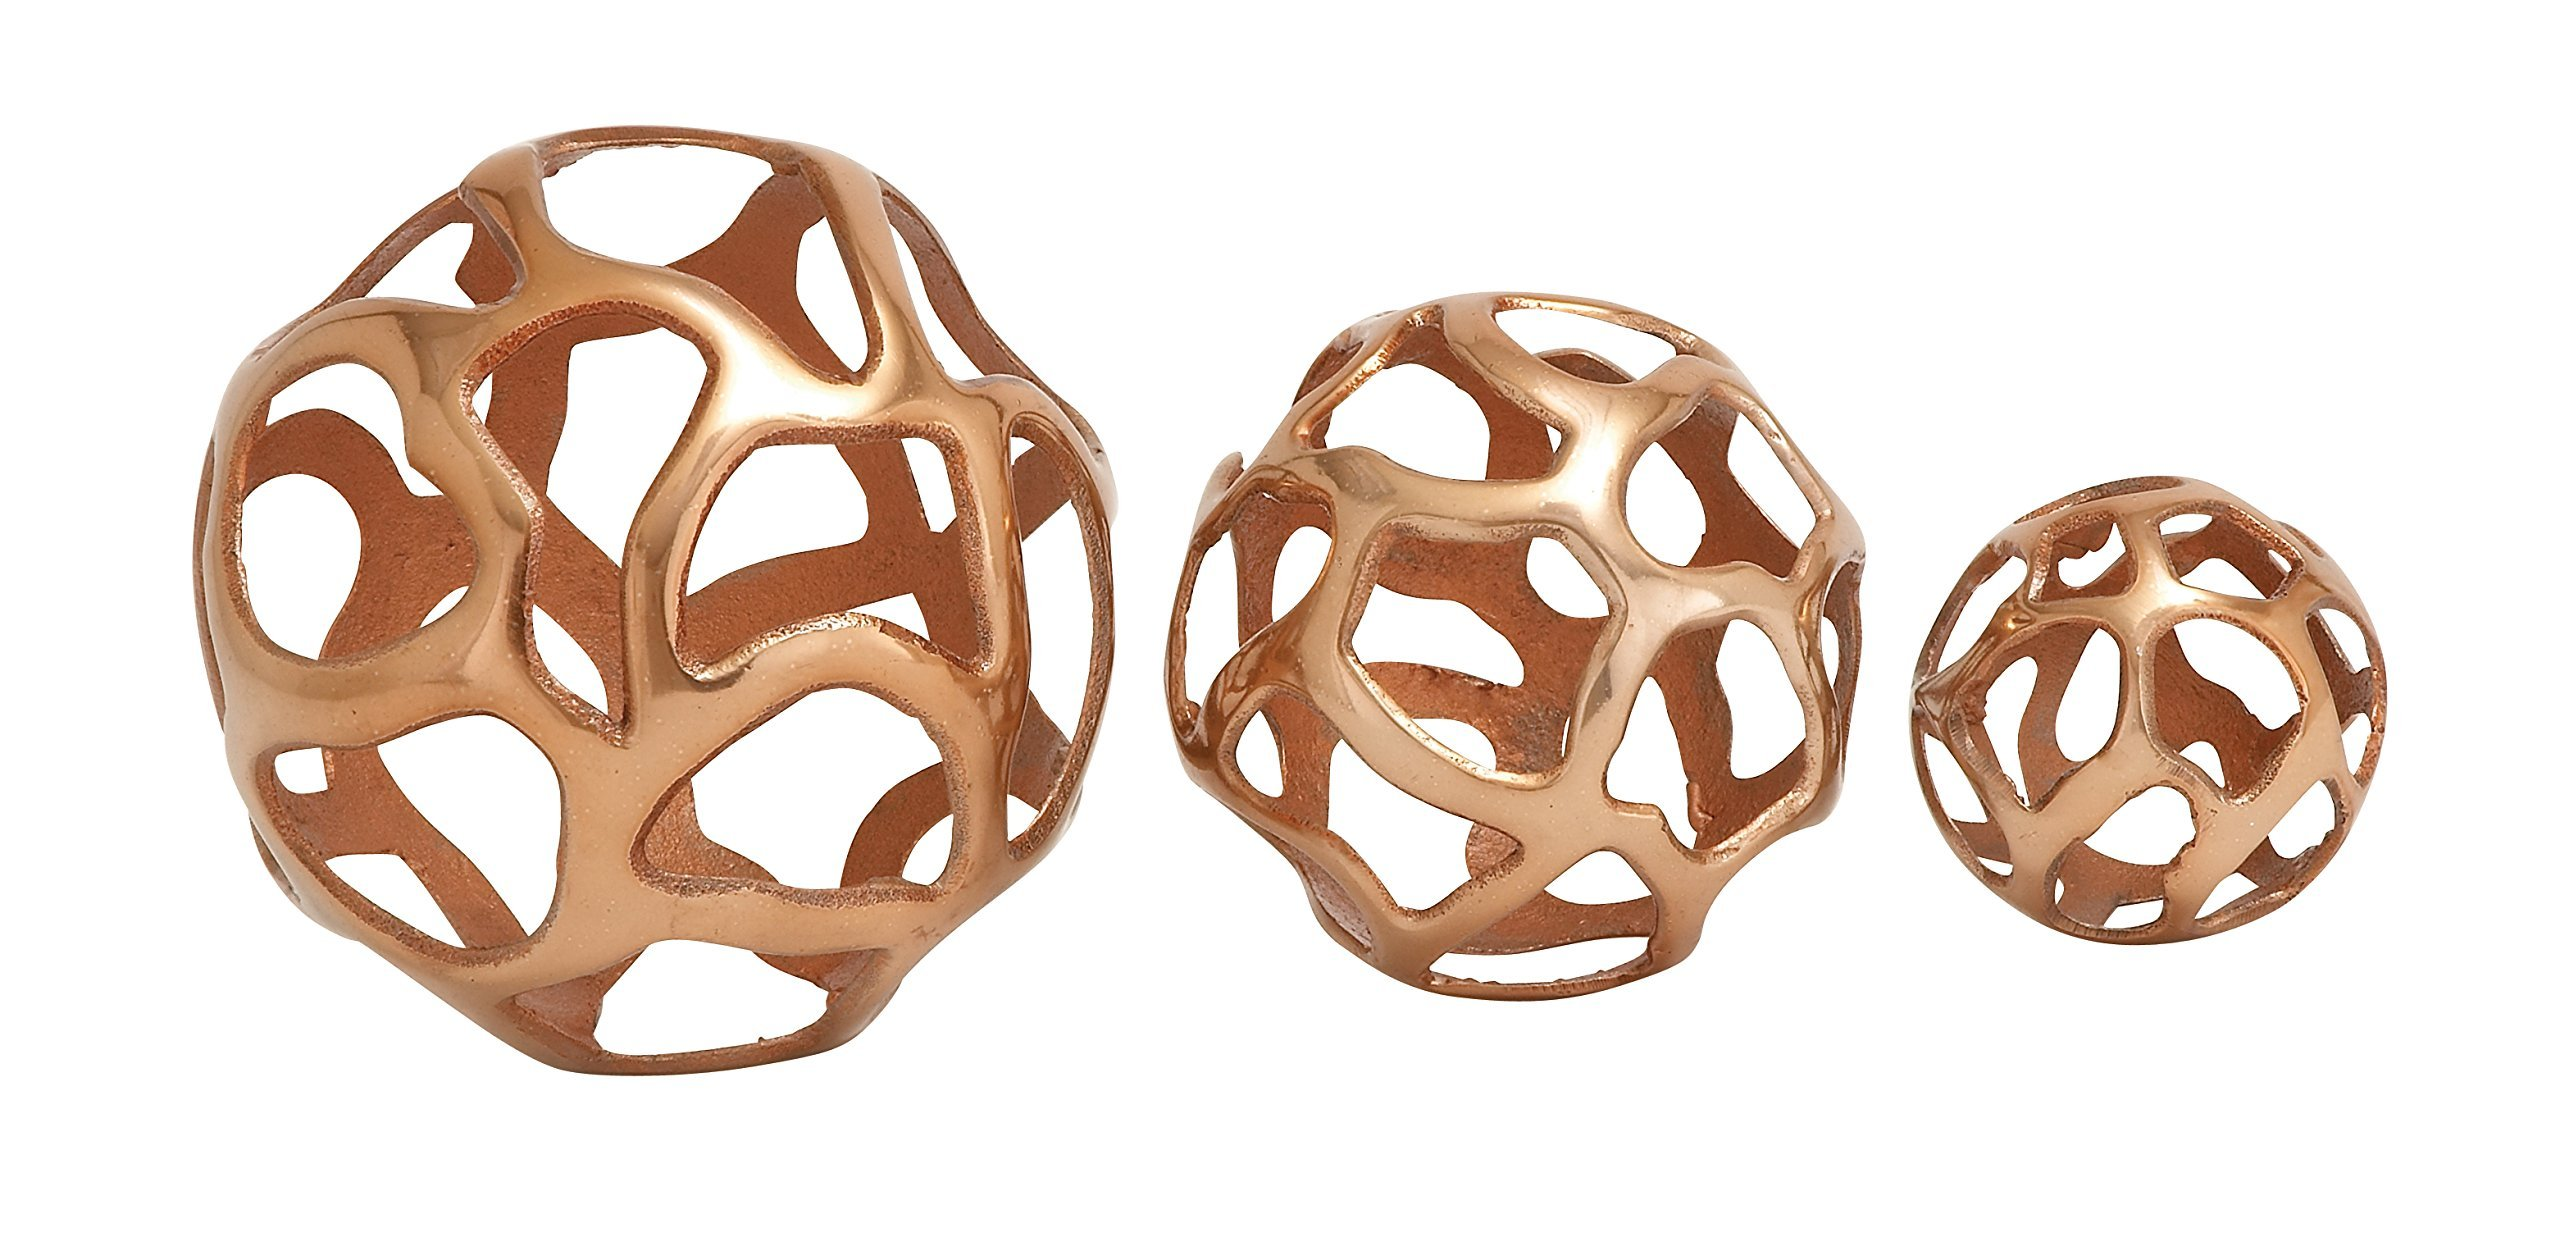 Deco 79 Aluminium Ball Decor, 8 by 6 by 4-Inch, Copper Brown, Set of 3 by Deco 79